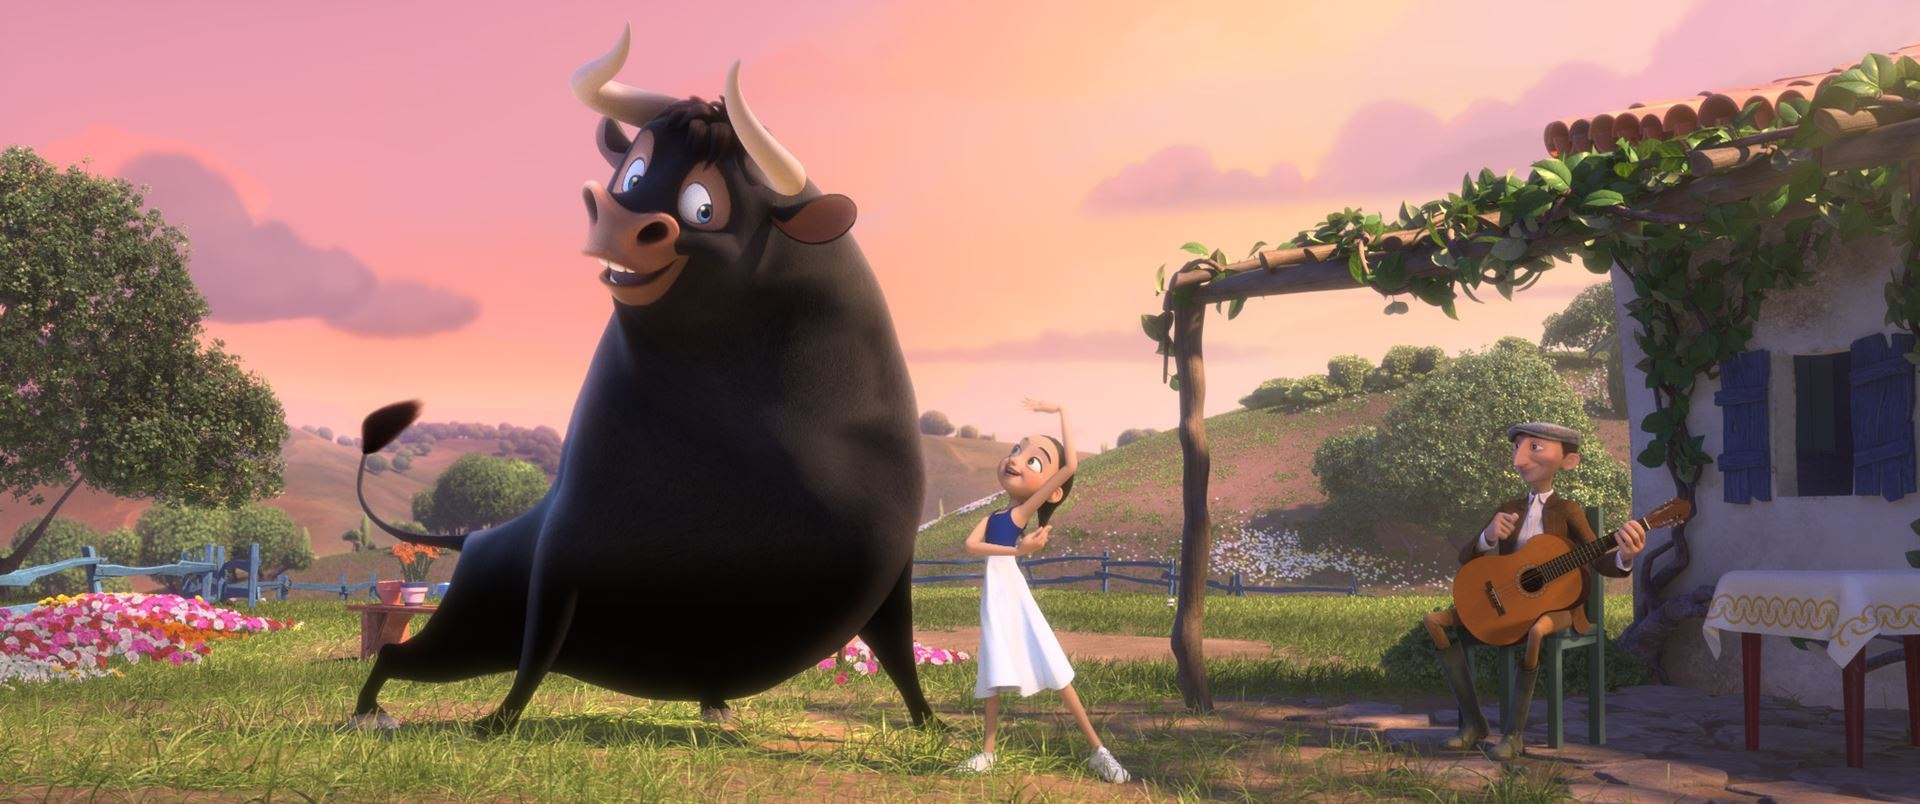 A Little Book With A Big Message Carlos Saldanha Talks Ferdinand Animation World Network